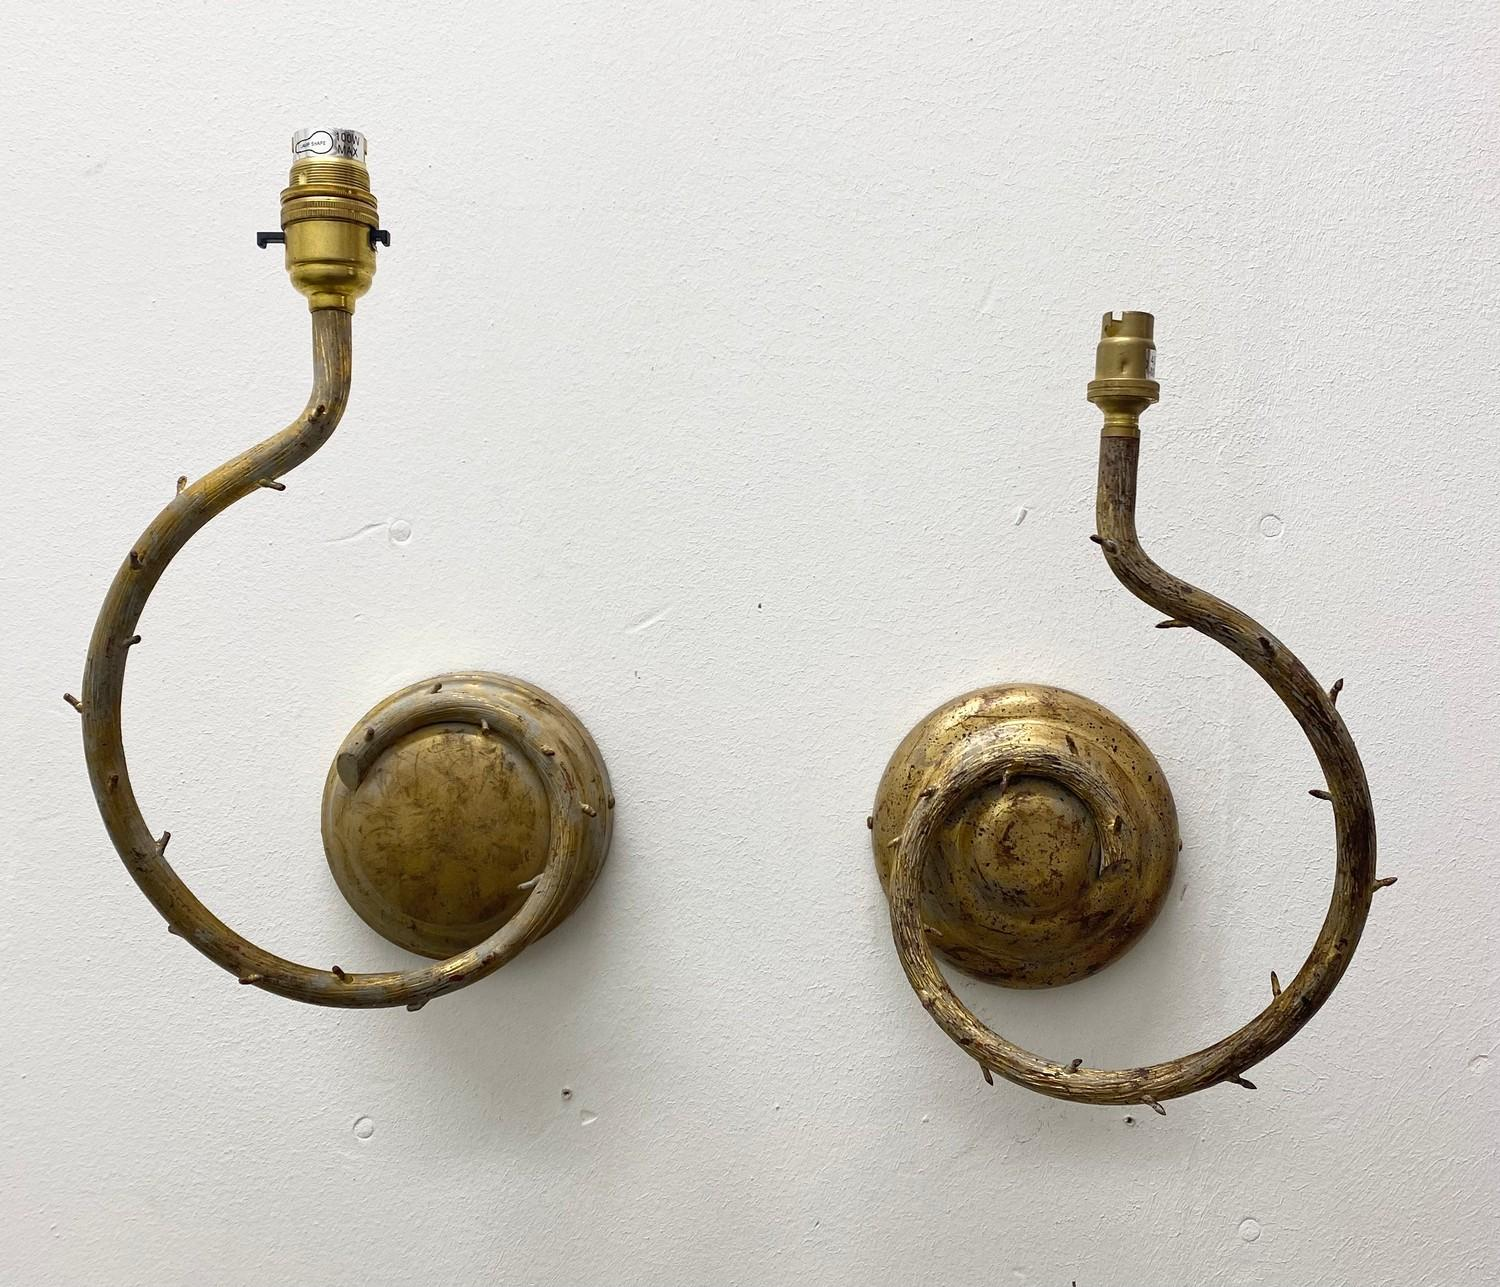 PORTA ROMANA WALL LIGHTS, a near pair, naturalistic branch design in decayed gold, largest 32cm